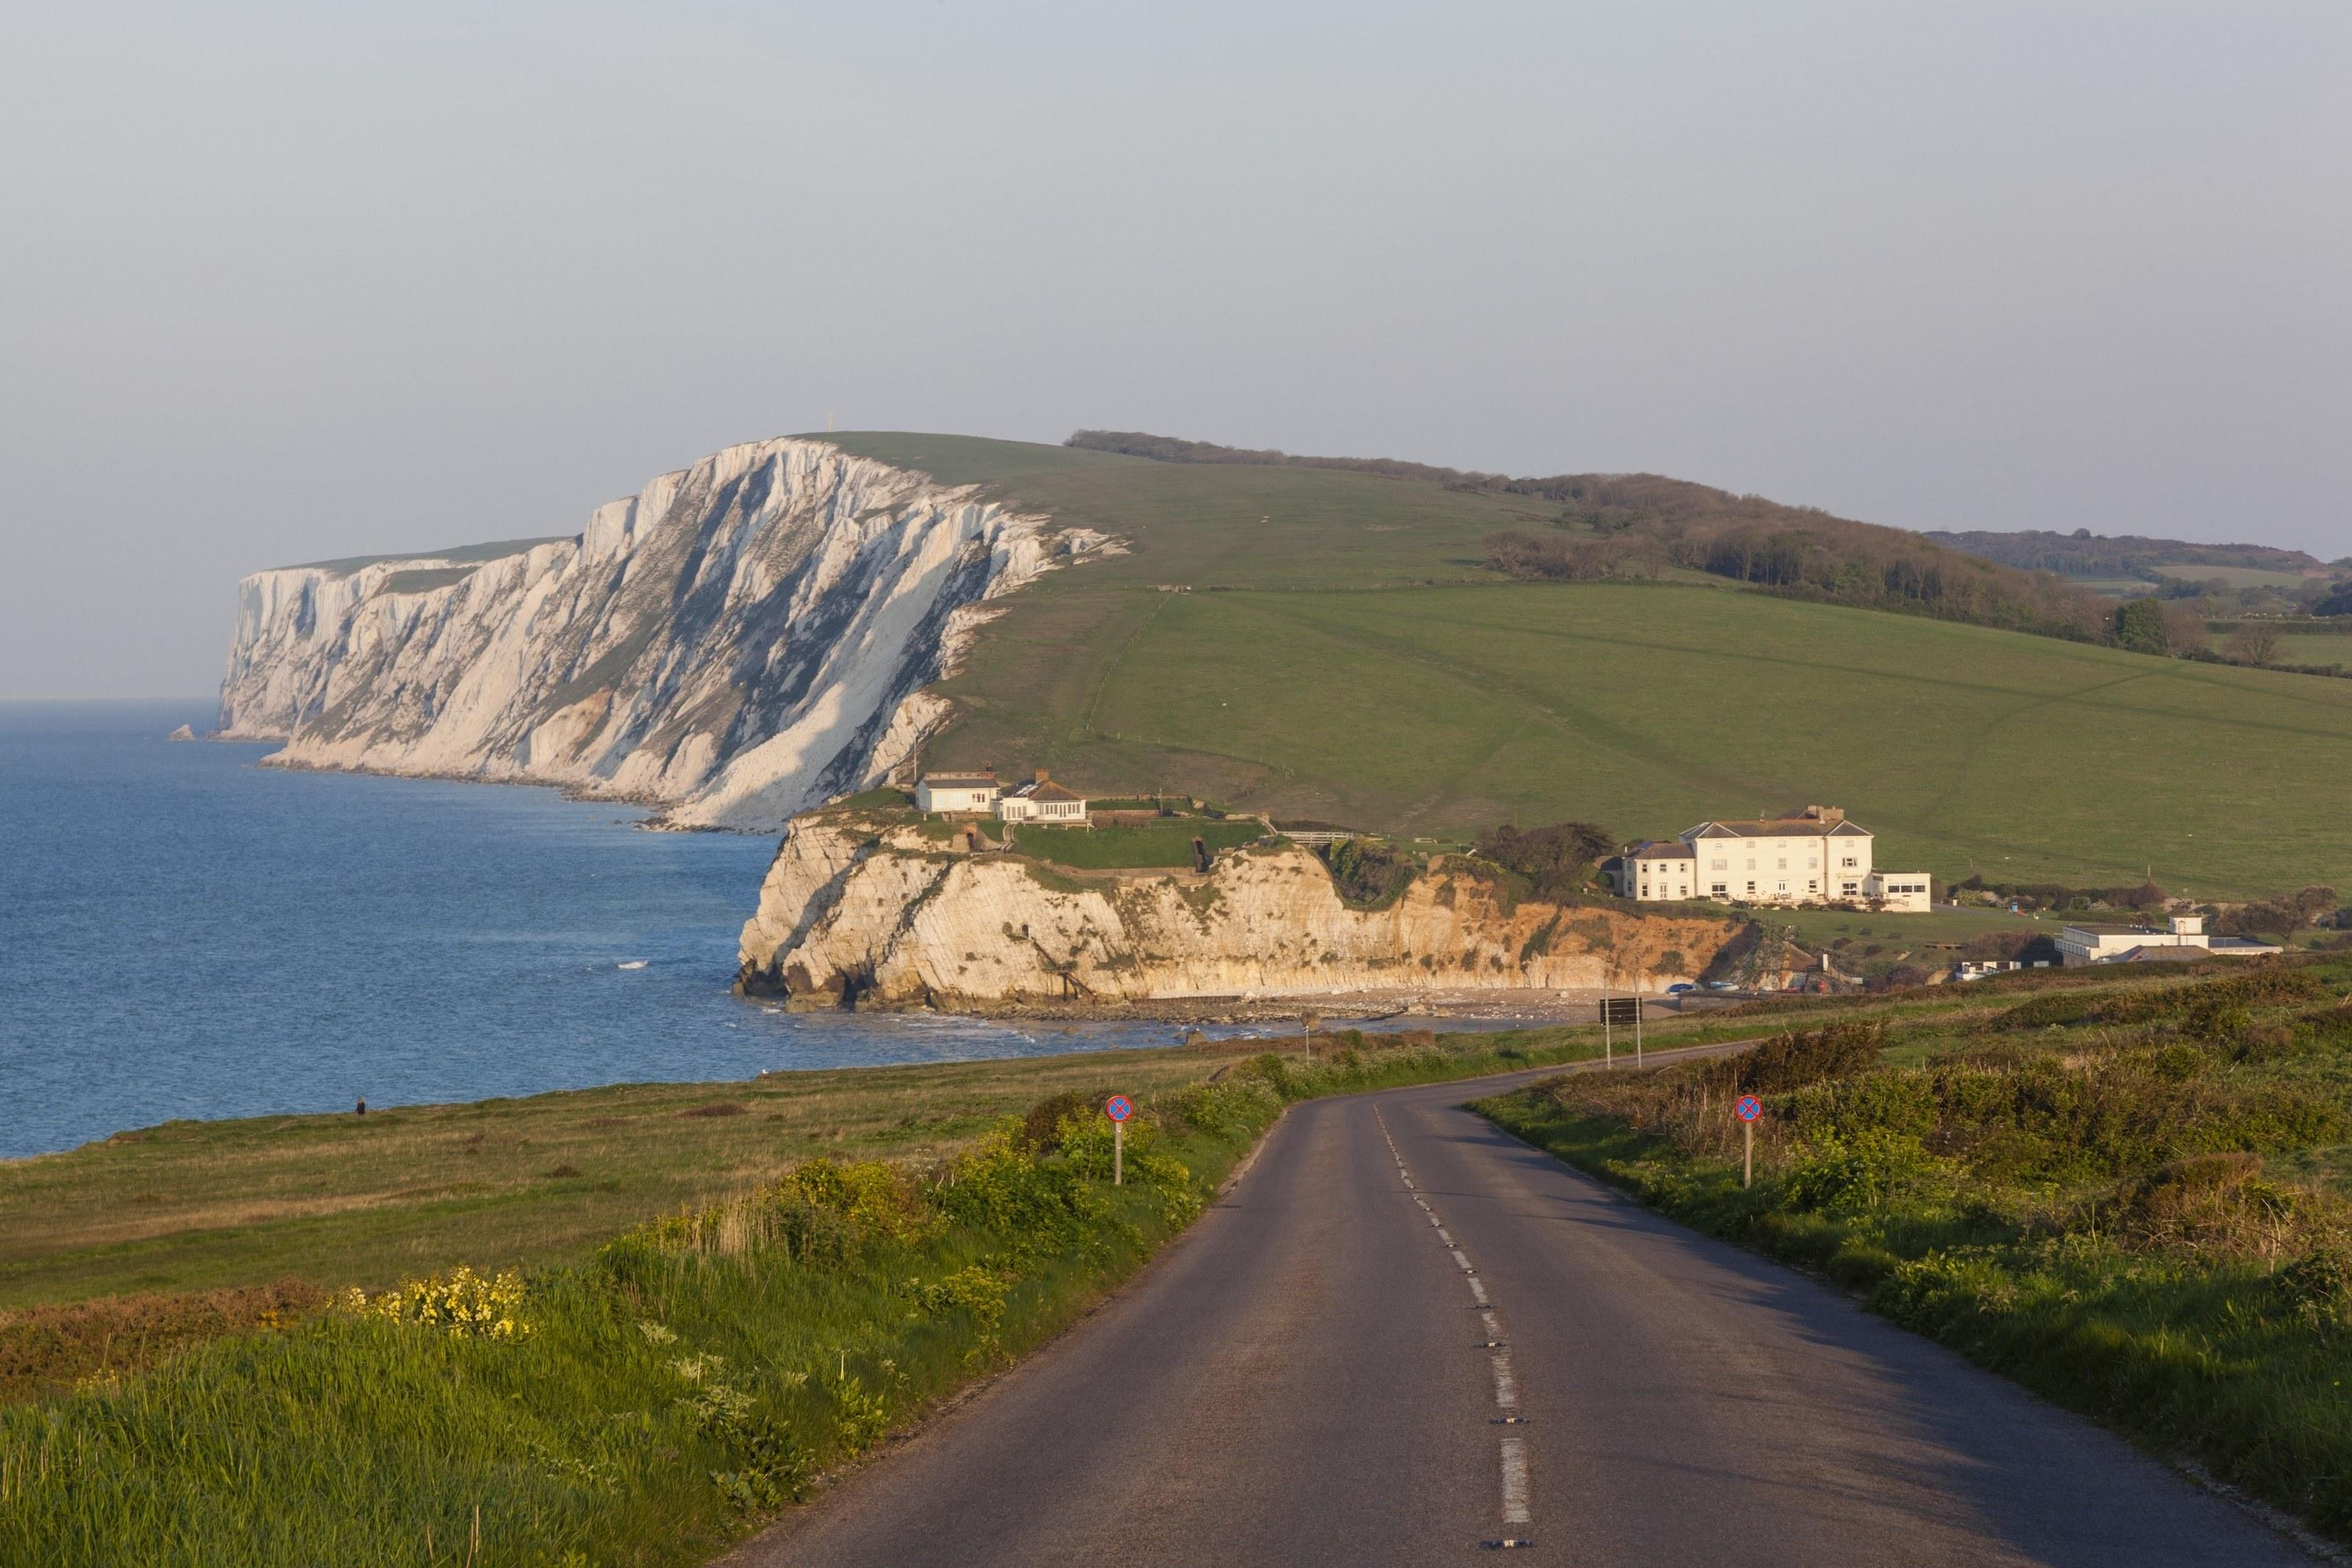 With its verdant rolling hills, dramatic seaside scenery, windy roads that bend inland towards green valleys and bend seaward toward white chalk cliffs, the Isle of Wight is any bike-enthusiasts dream setting. Best of all, perhaps, is that the Isle of Wight is a mere three hour drive southwest of London, making it an ideal weekend cycling trip.